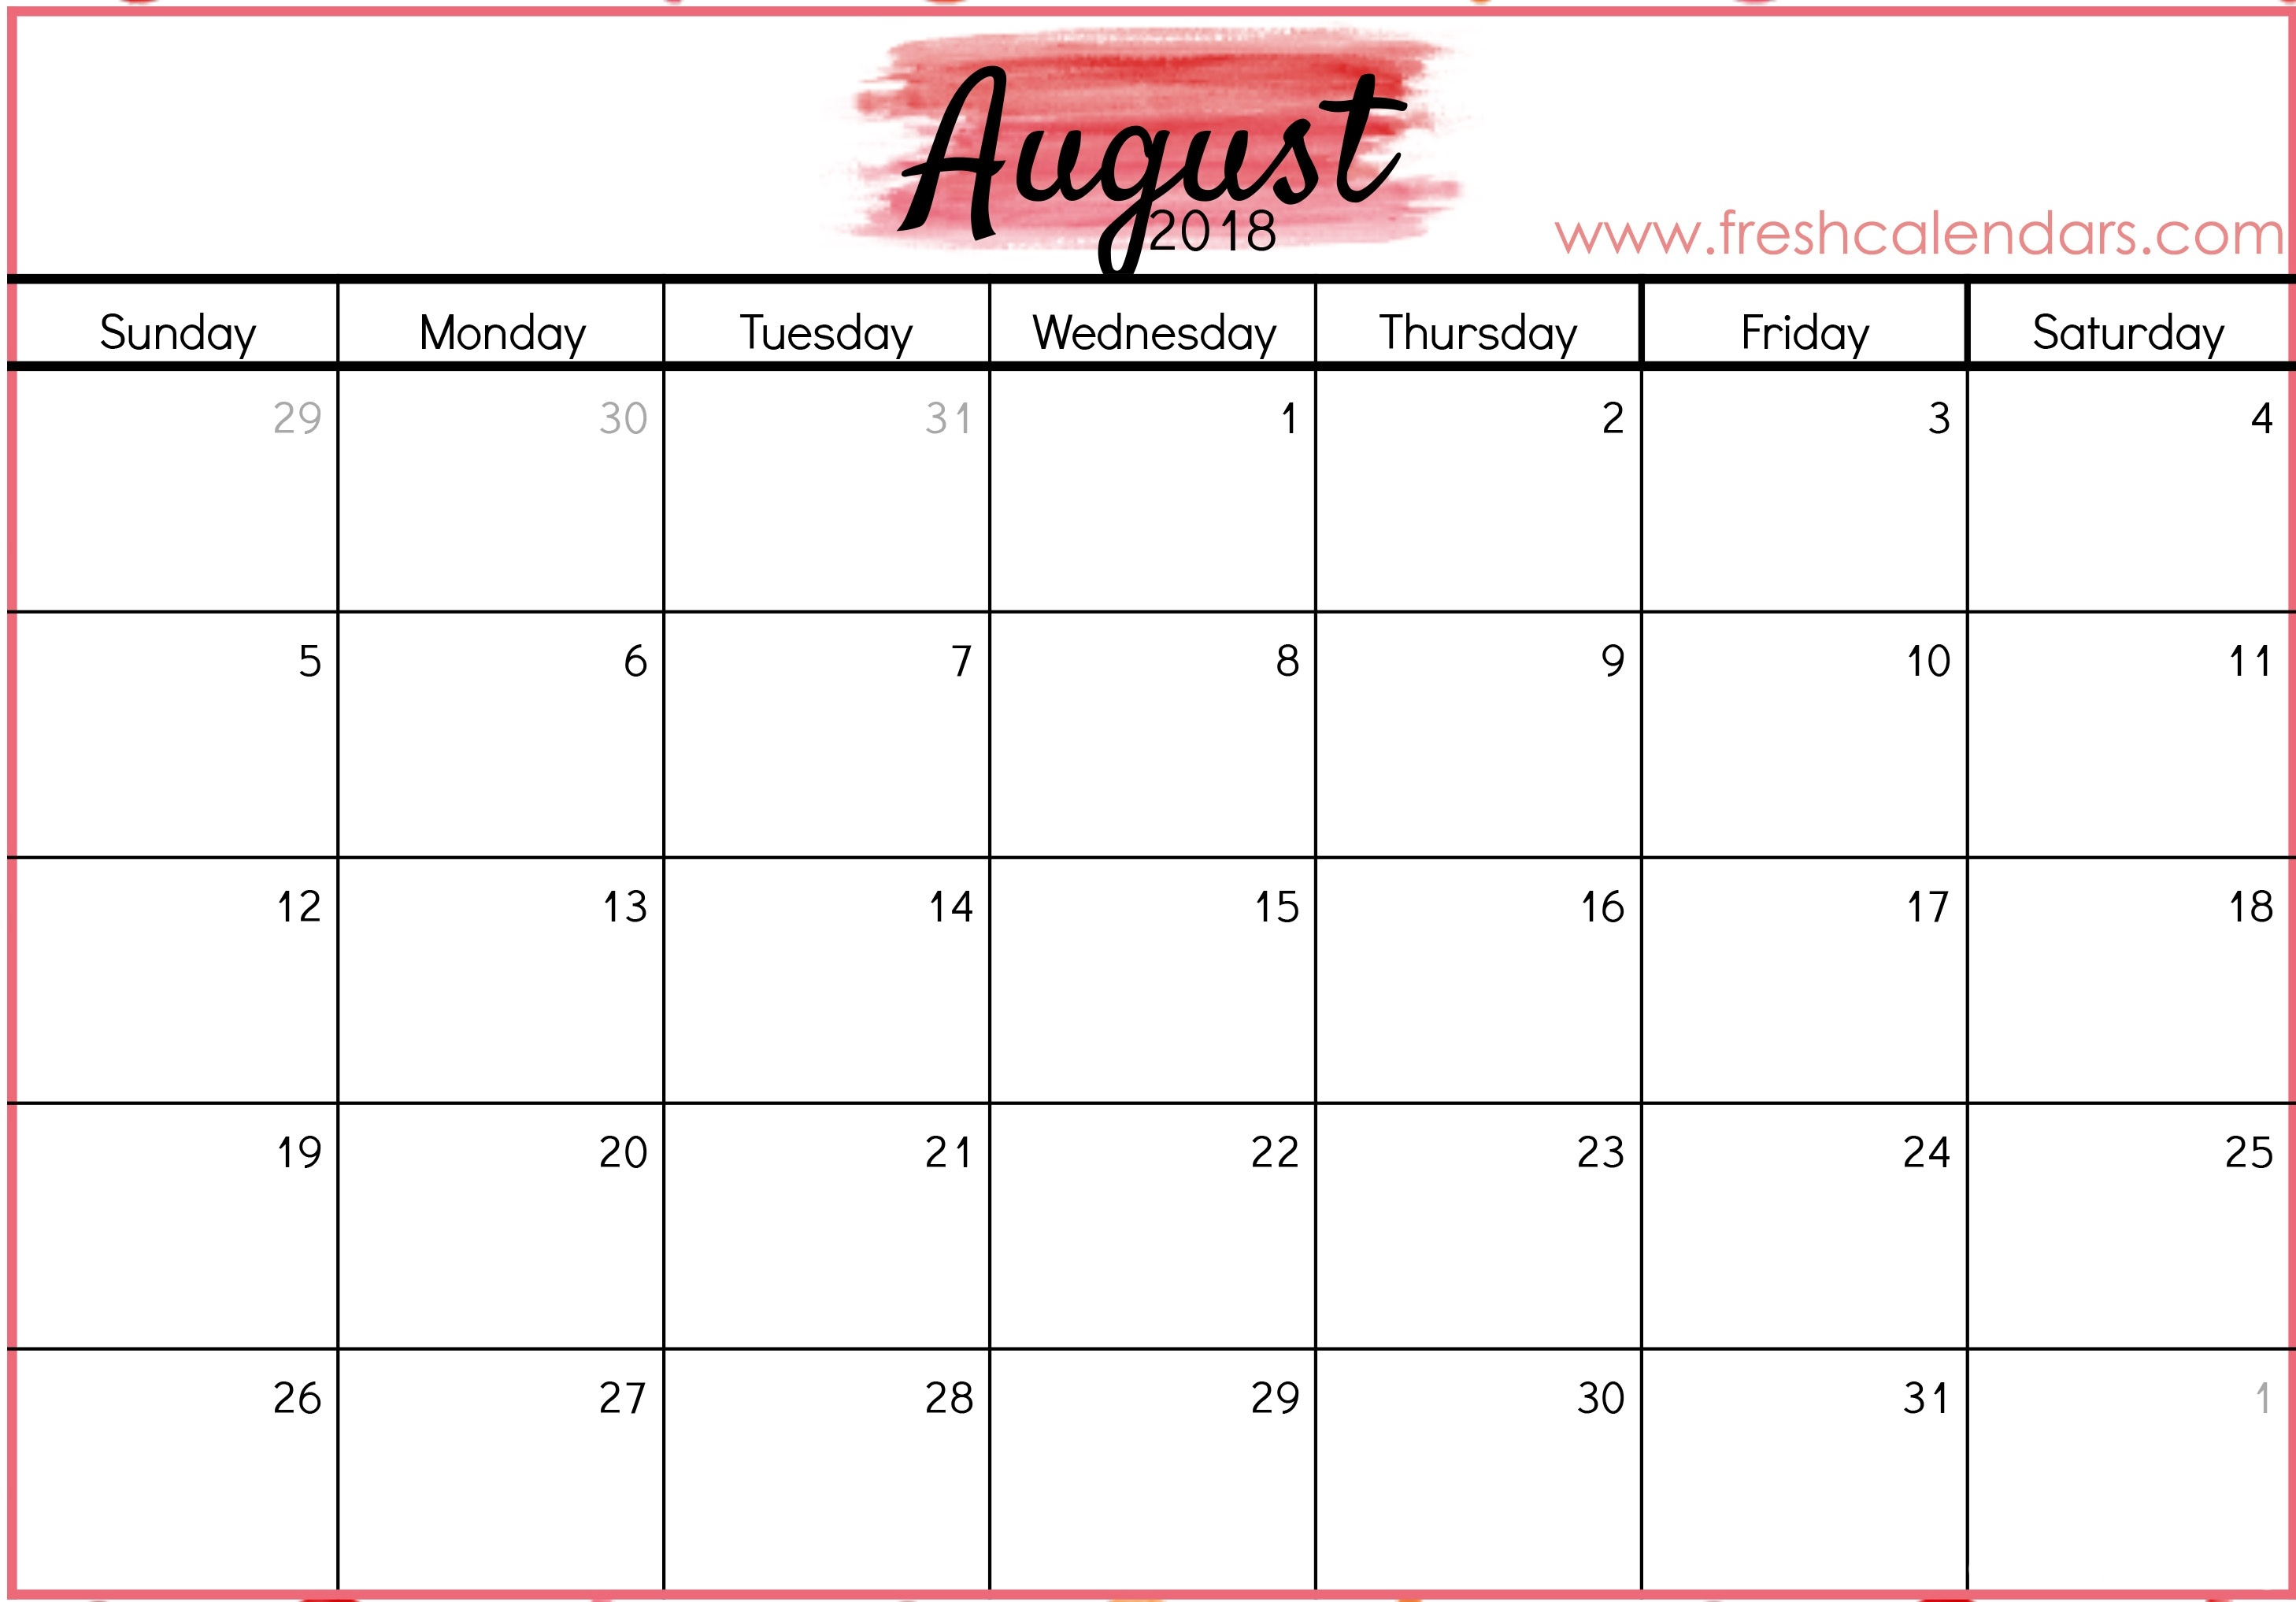 Blank August 2018 Calendar Printable Templates  Picture Of August On Calendar